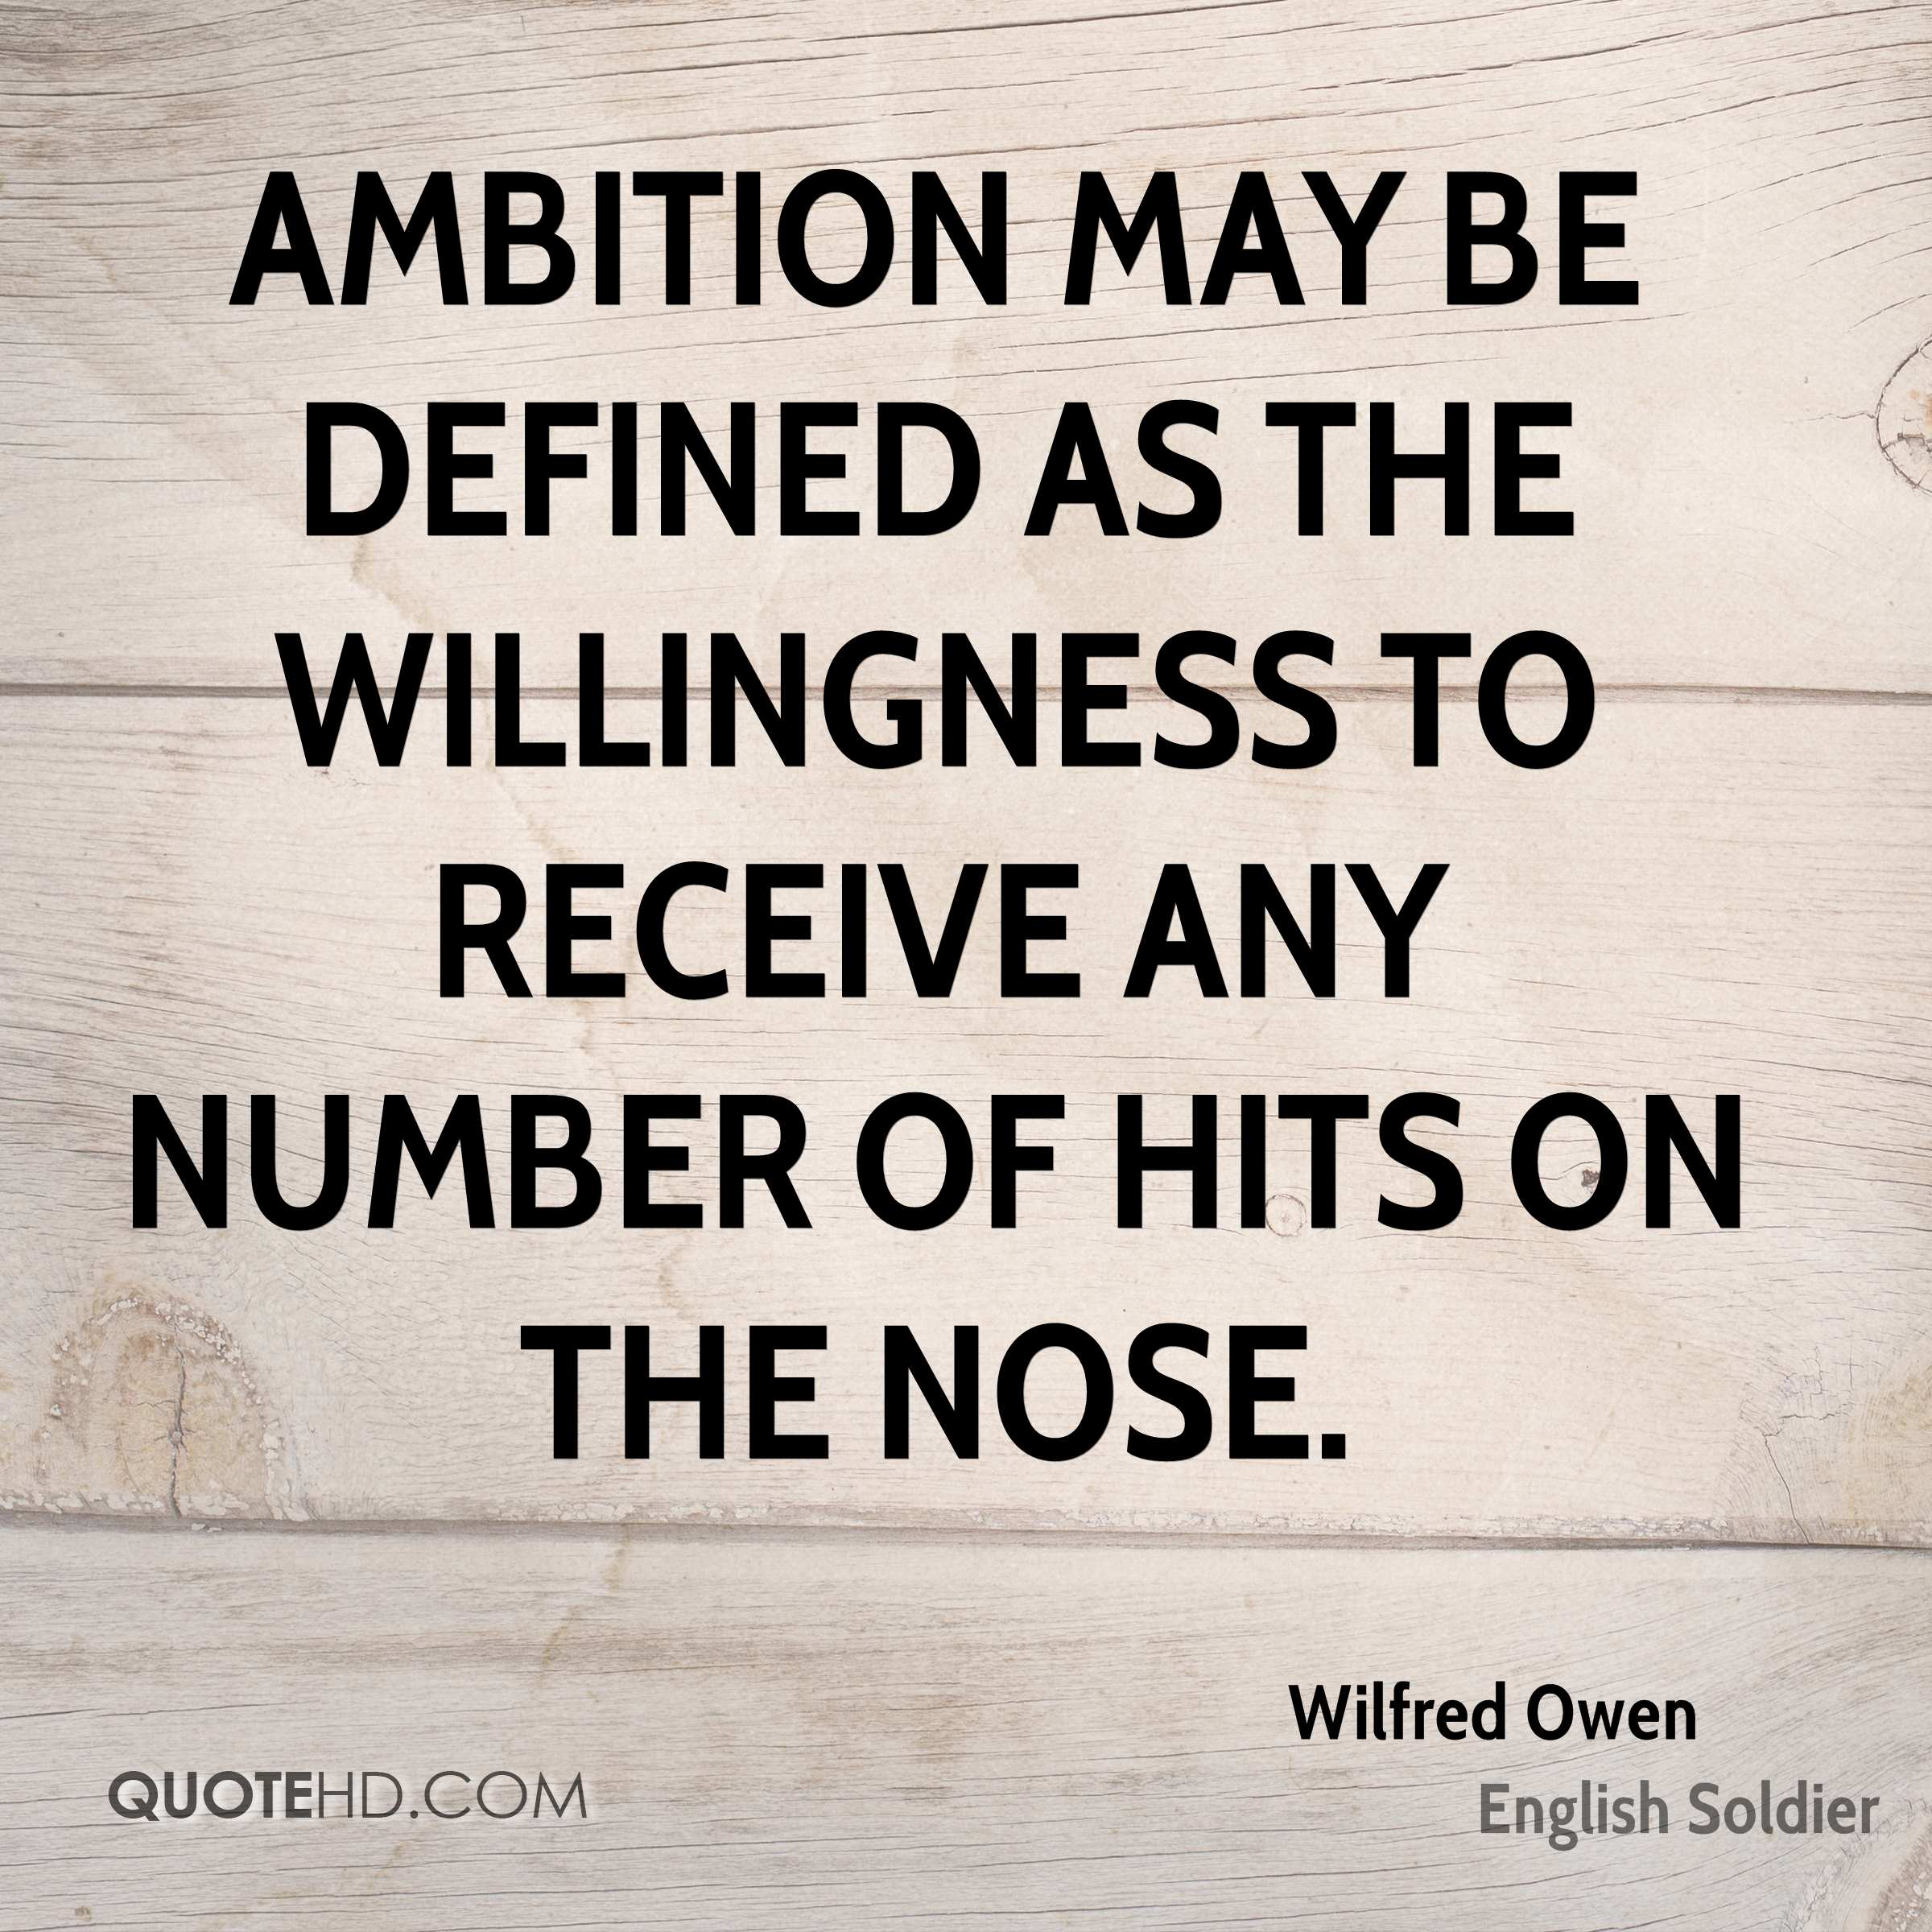 Ambition may be defined as the willingness to receive any number of hits on the nose.